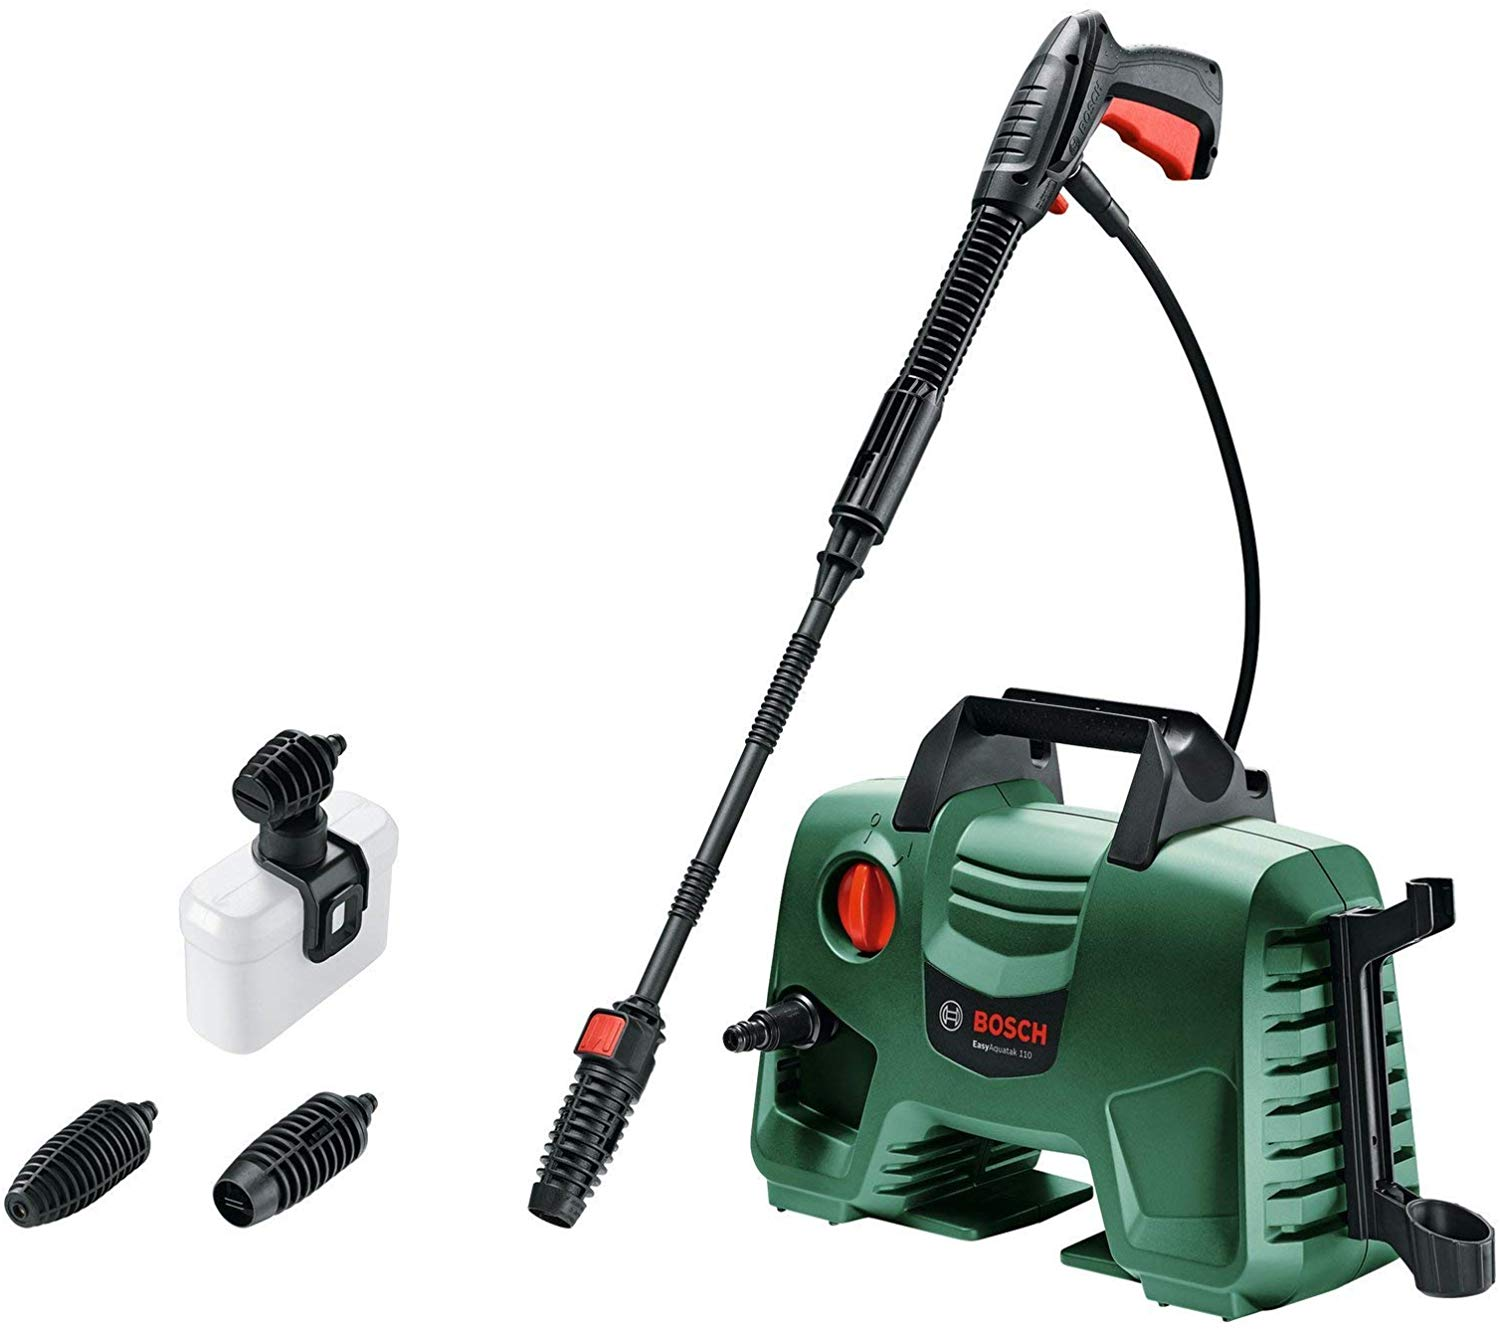 44% off Bosch EasyAquatak 110 High Pressure Washer on Amazon